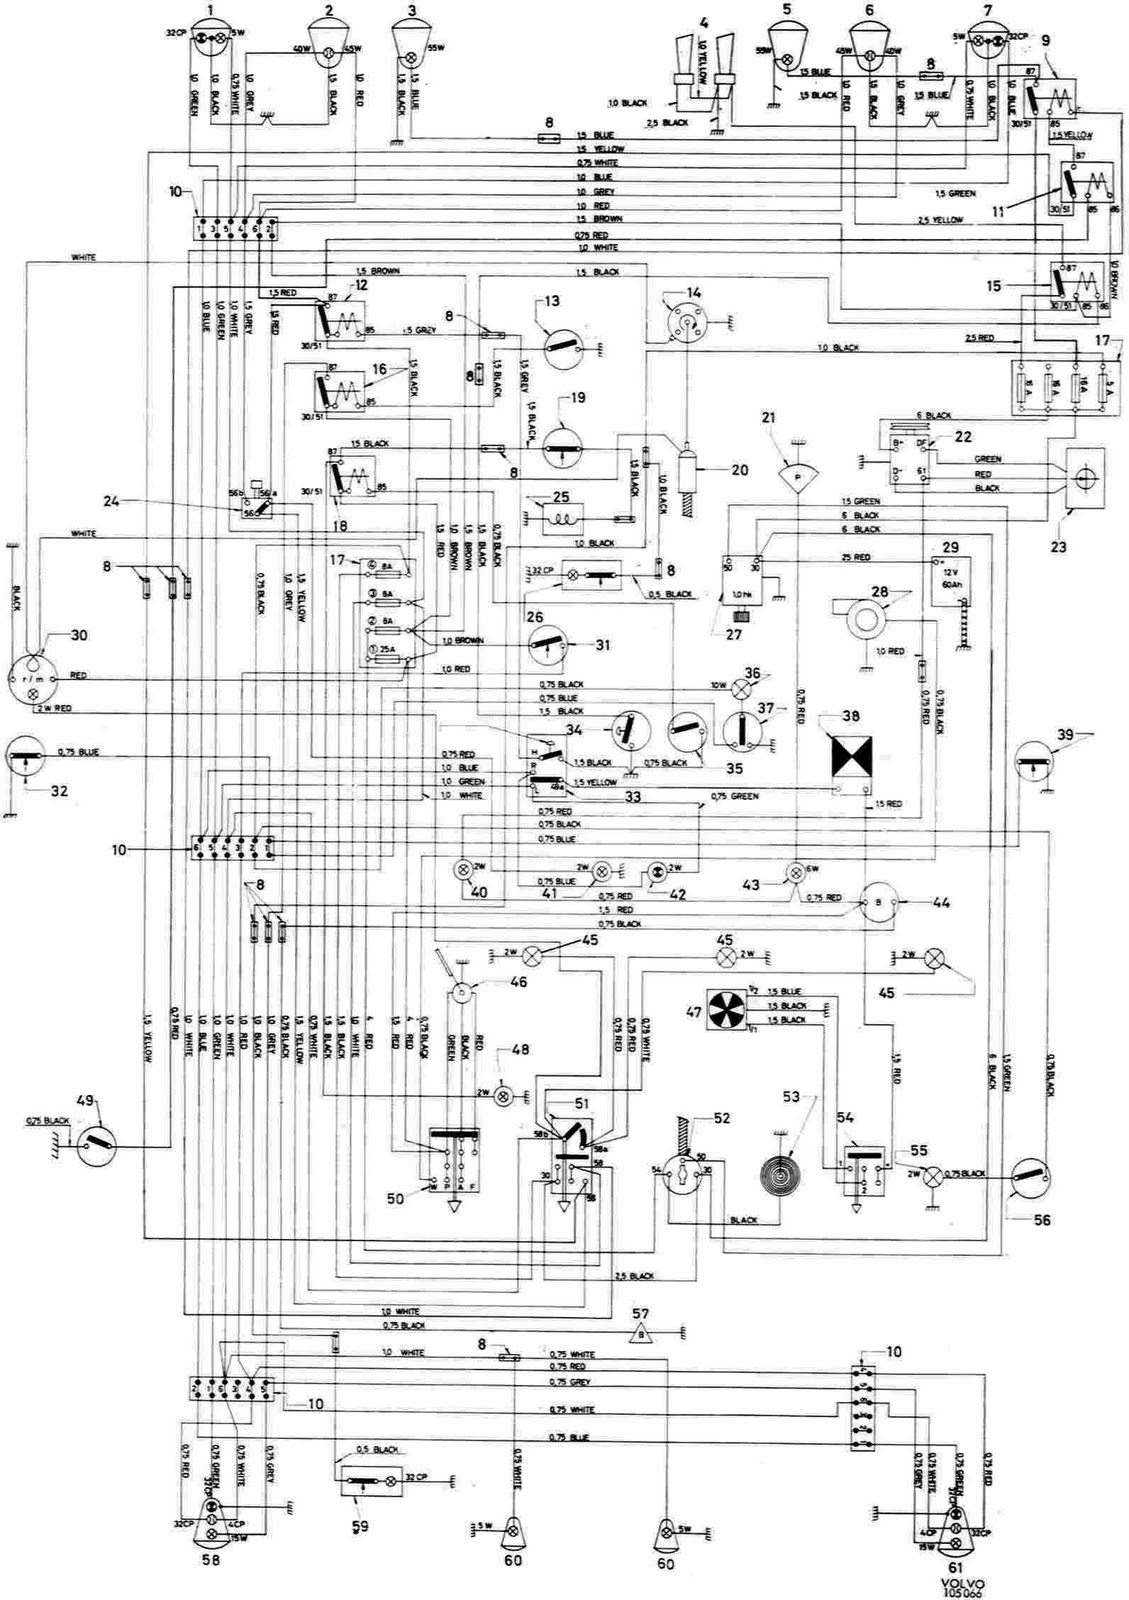 Volvo 123gt Complete Electrical Wiring Diagram